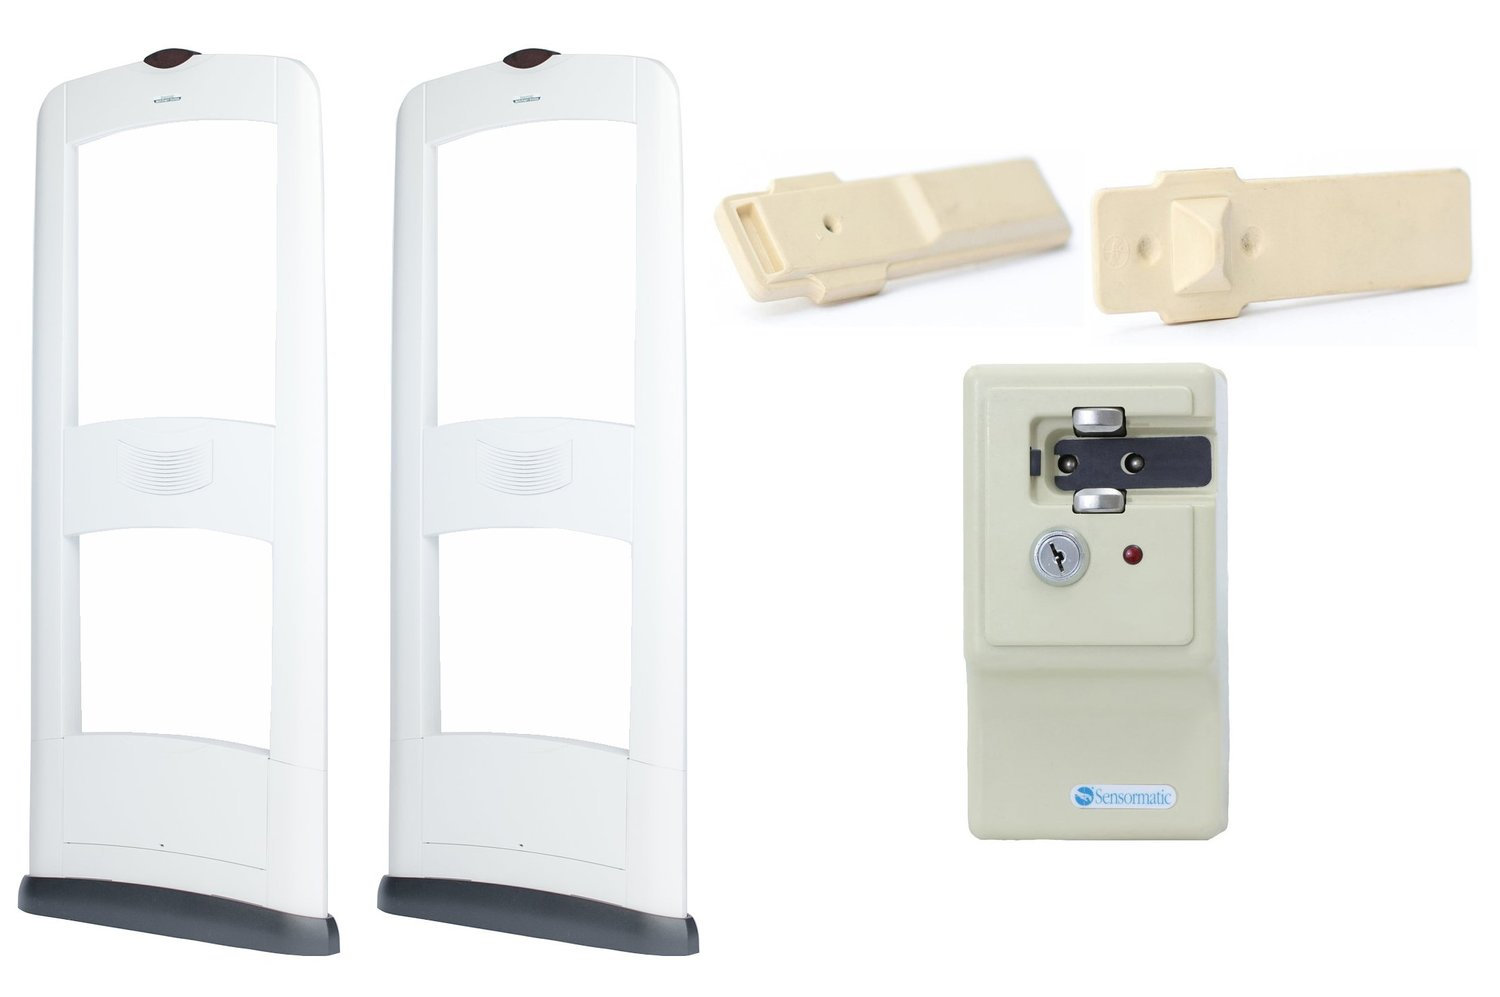 8 Foot Door Retail Security Tag Package - SQP2122E-8